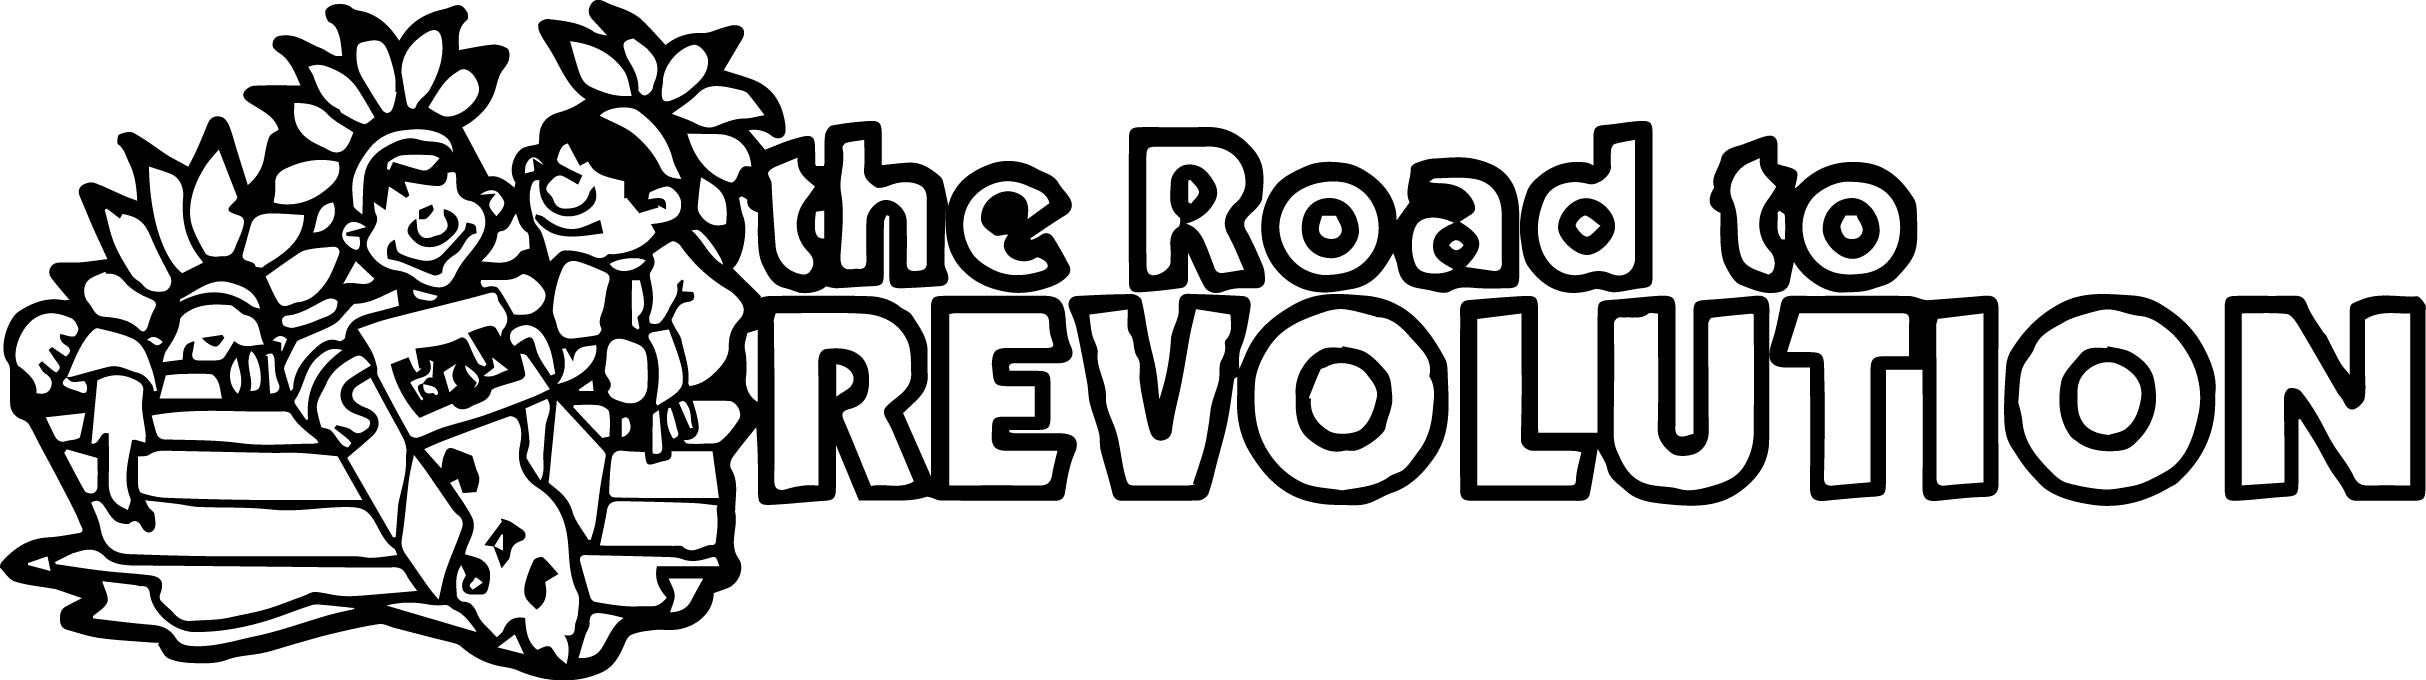 American Revolution Banner Road To Revolution Coloring Page